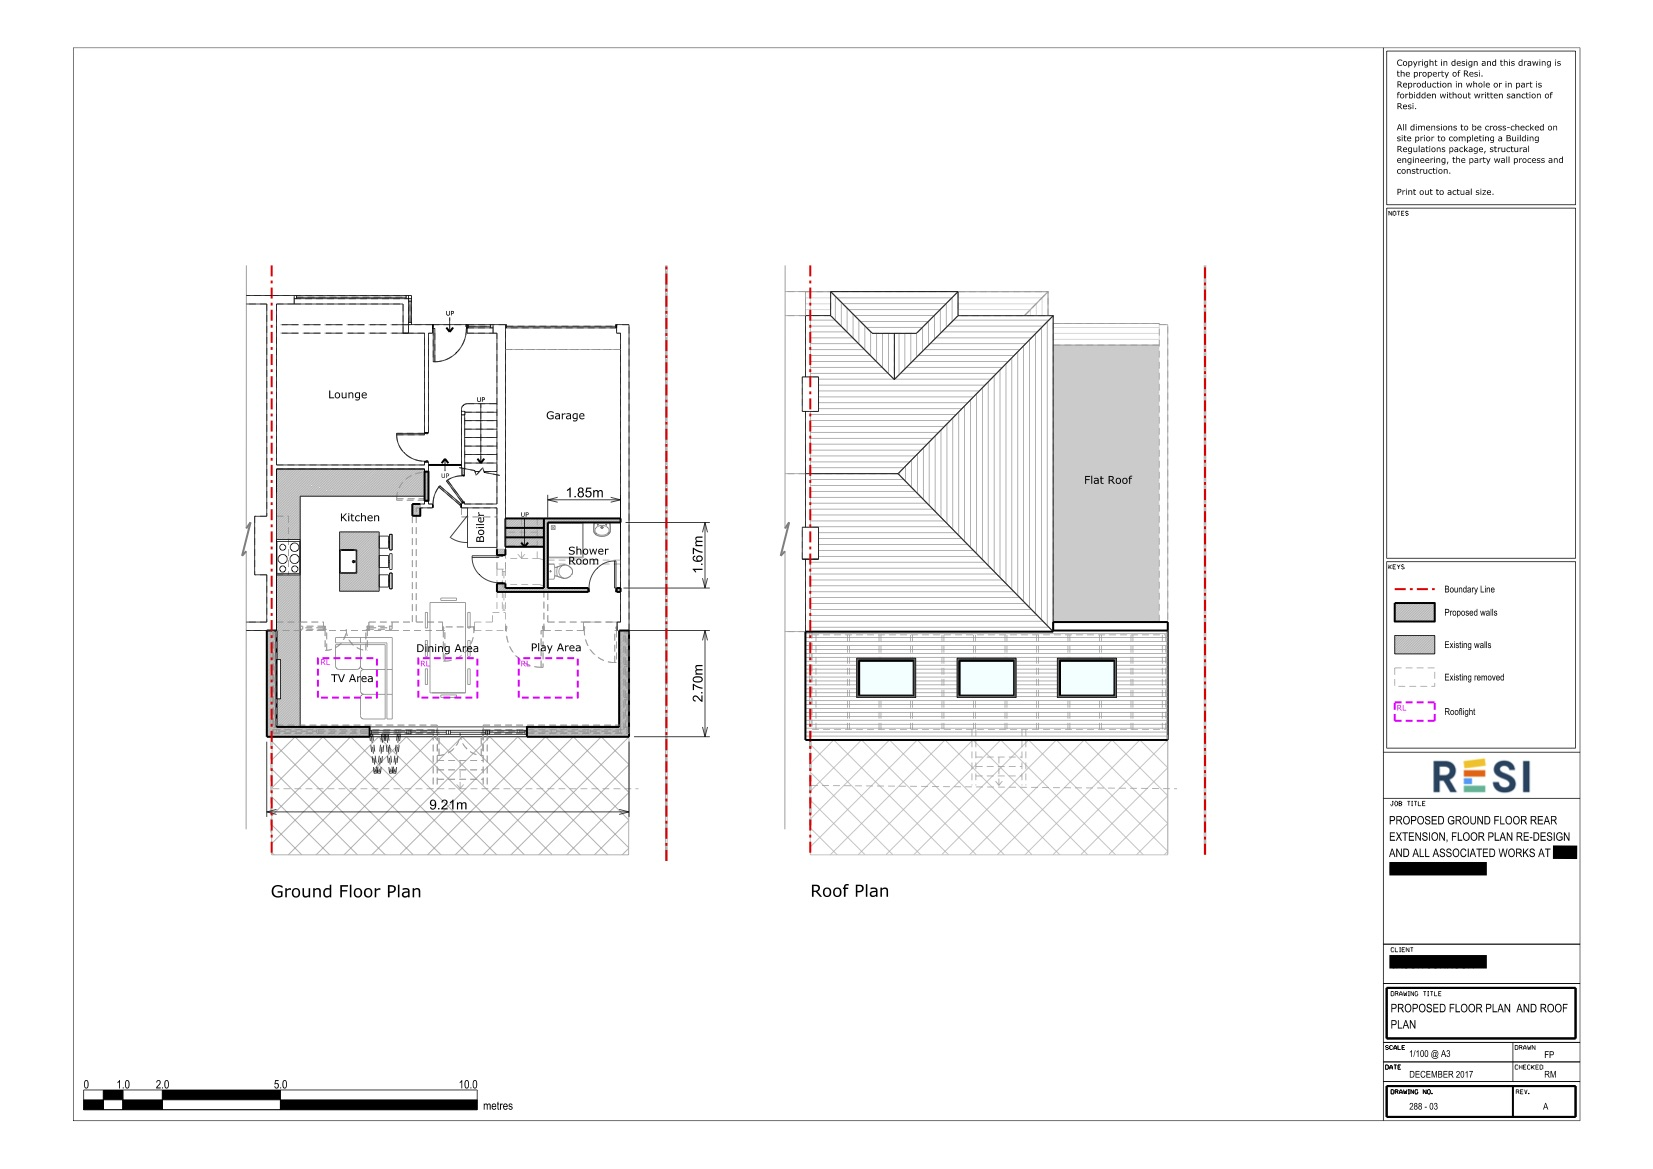 Architectural drawings rev a   floor and roof plans